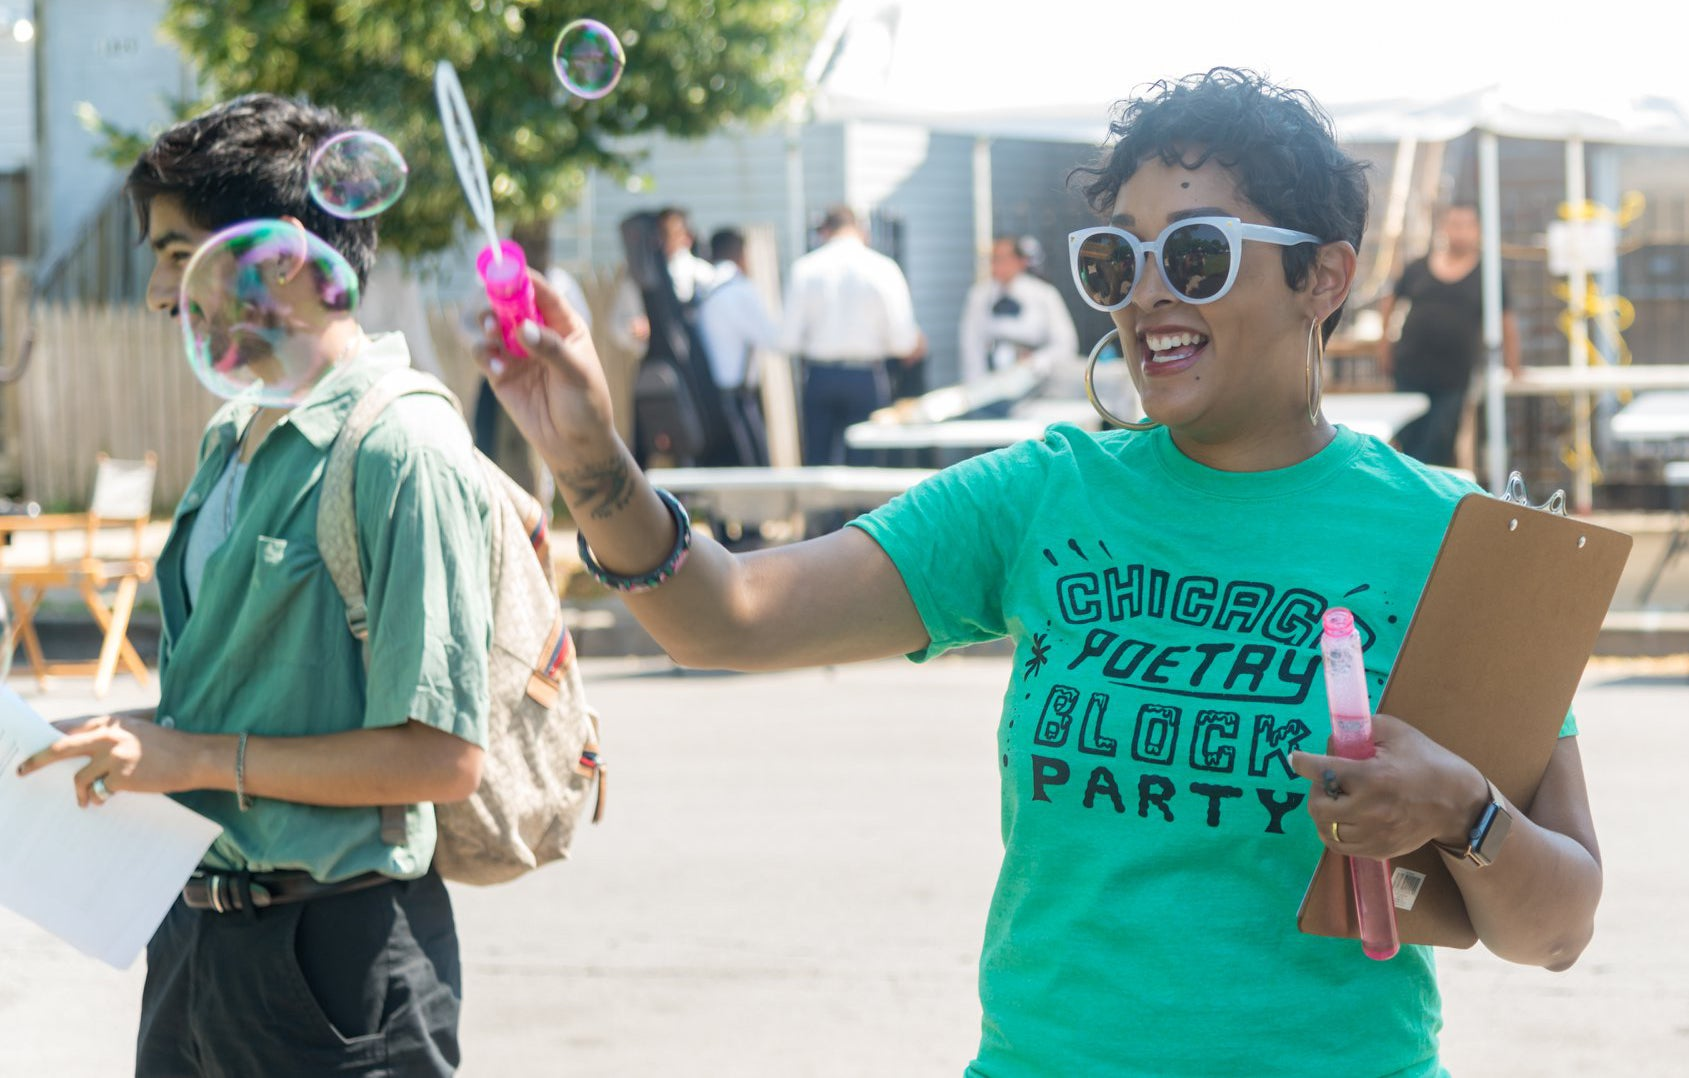 Eve blowing bubbles at a Chicago block party